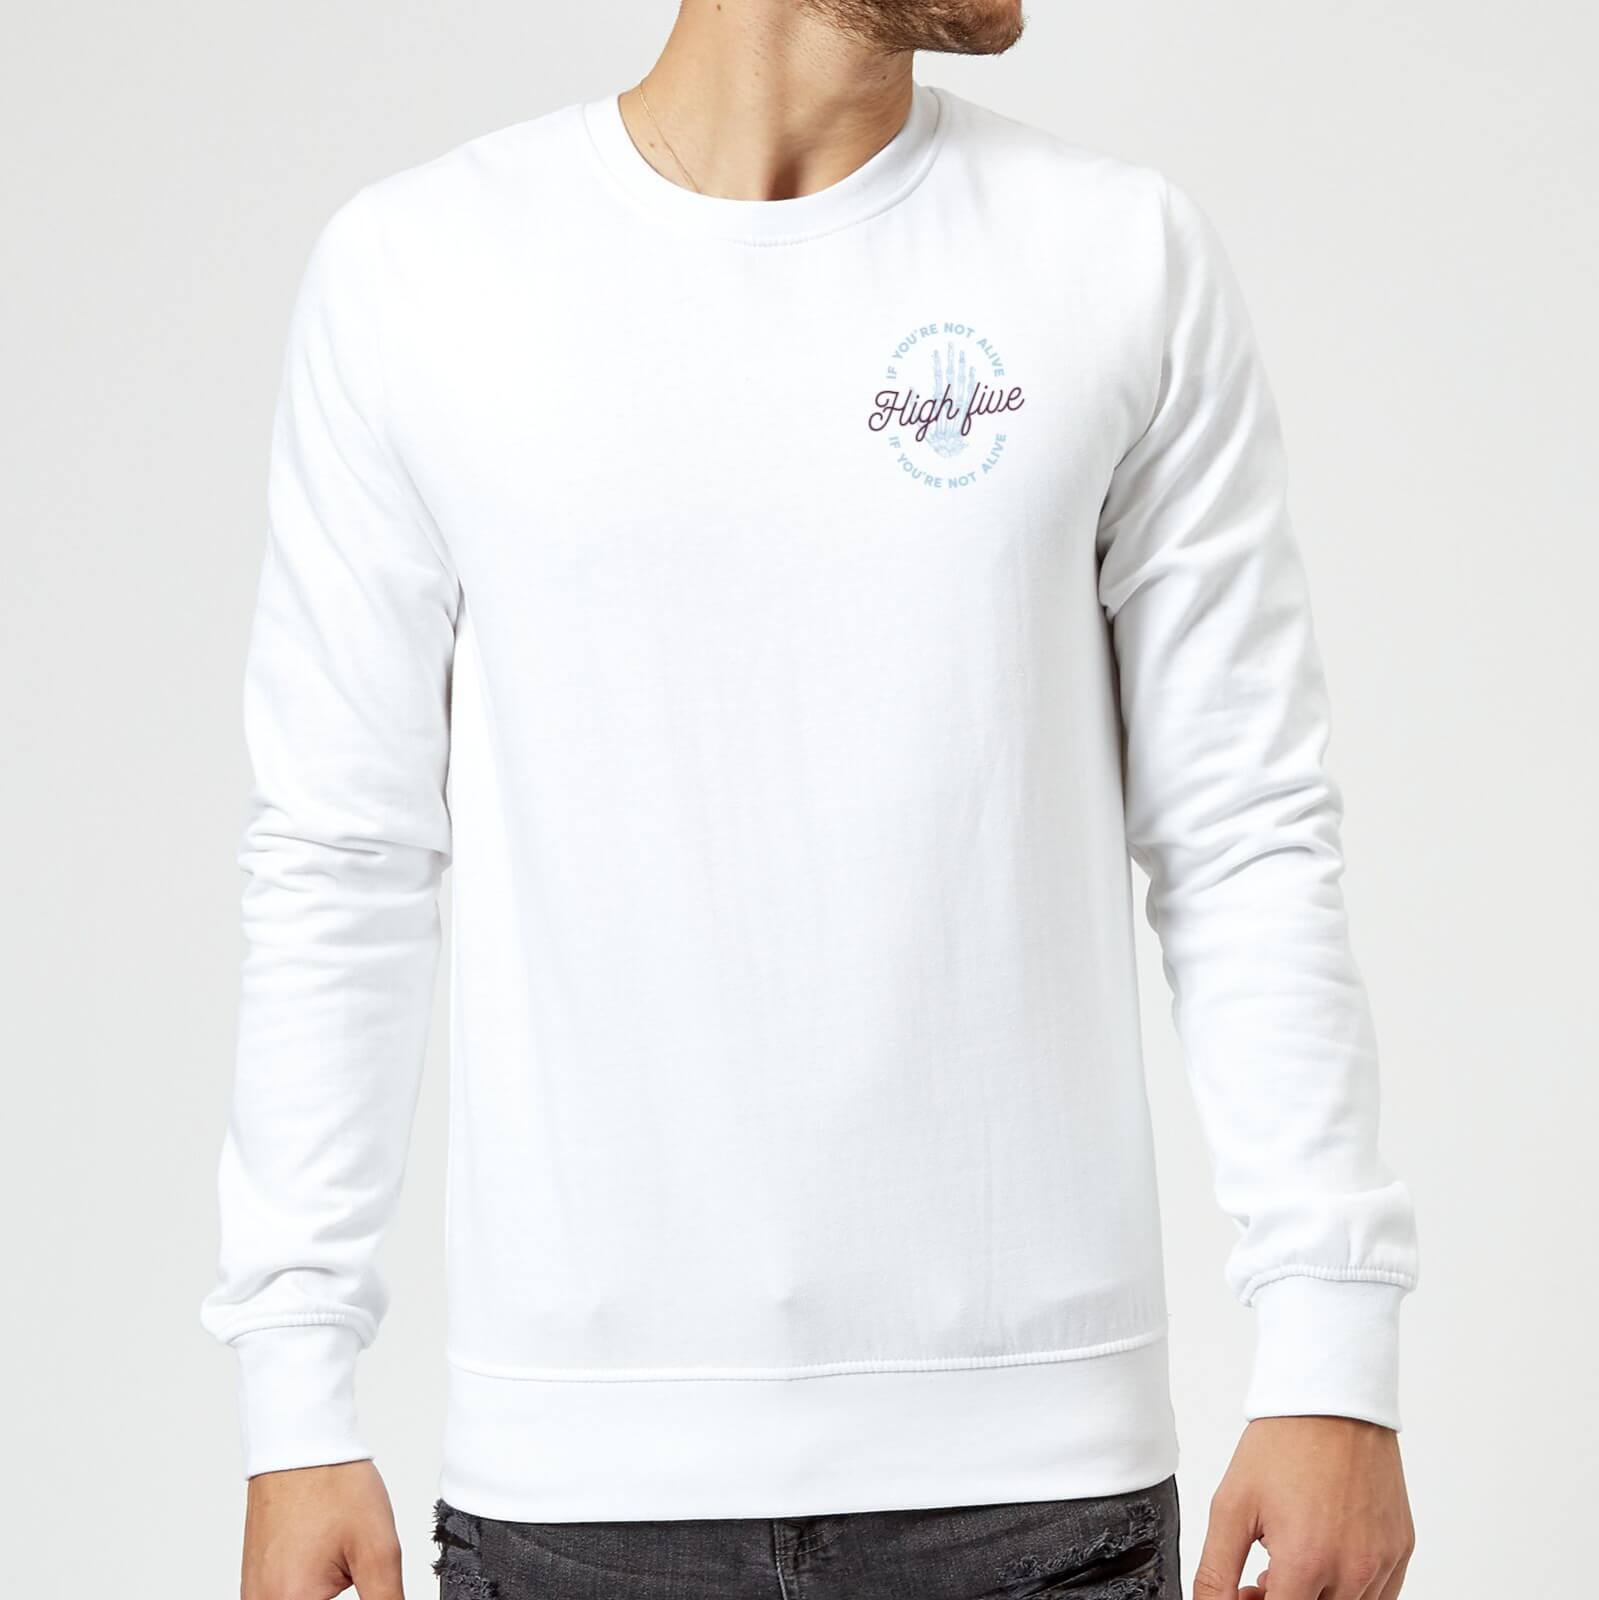 If Youre Not Alive, High Five Sweatshirt   White   XXL   White